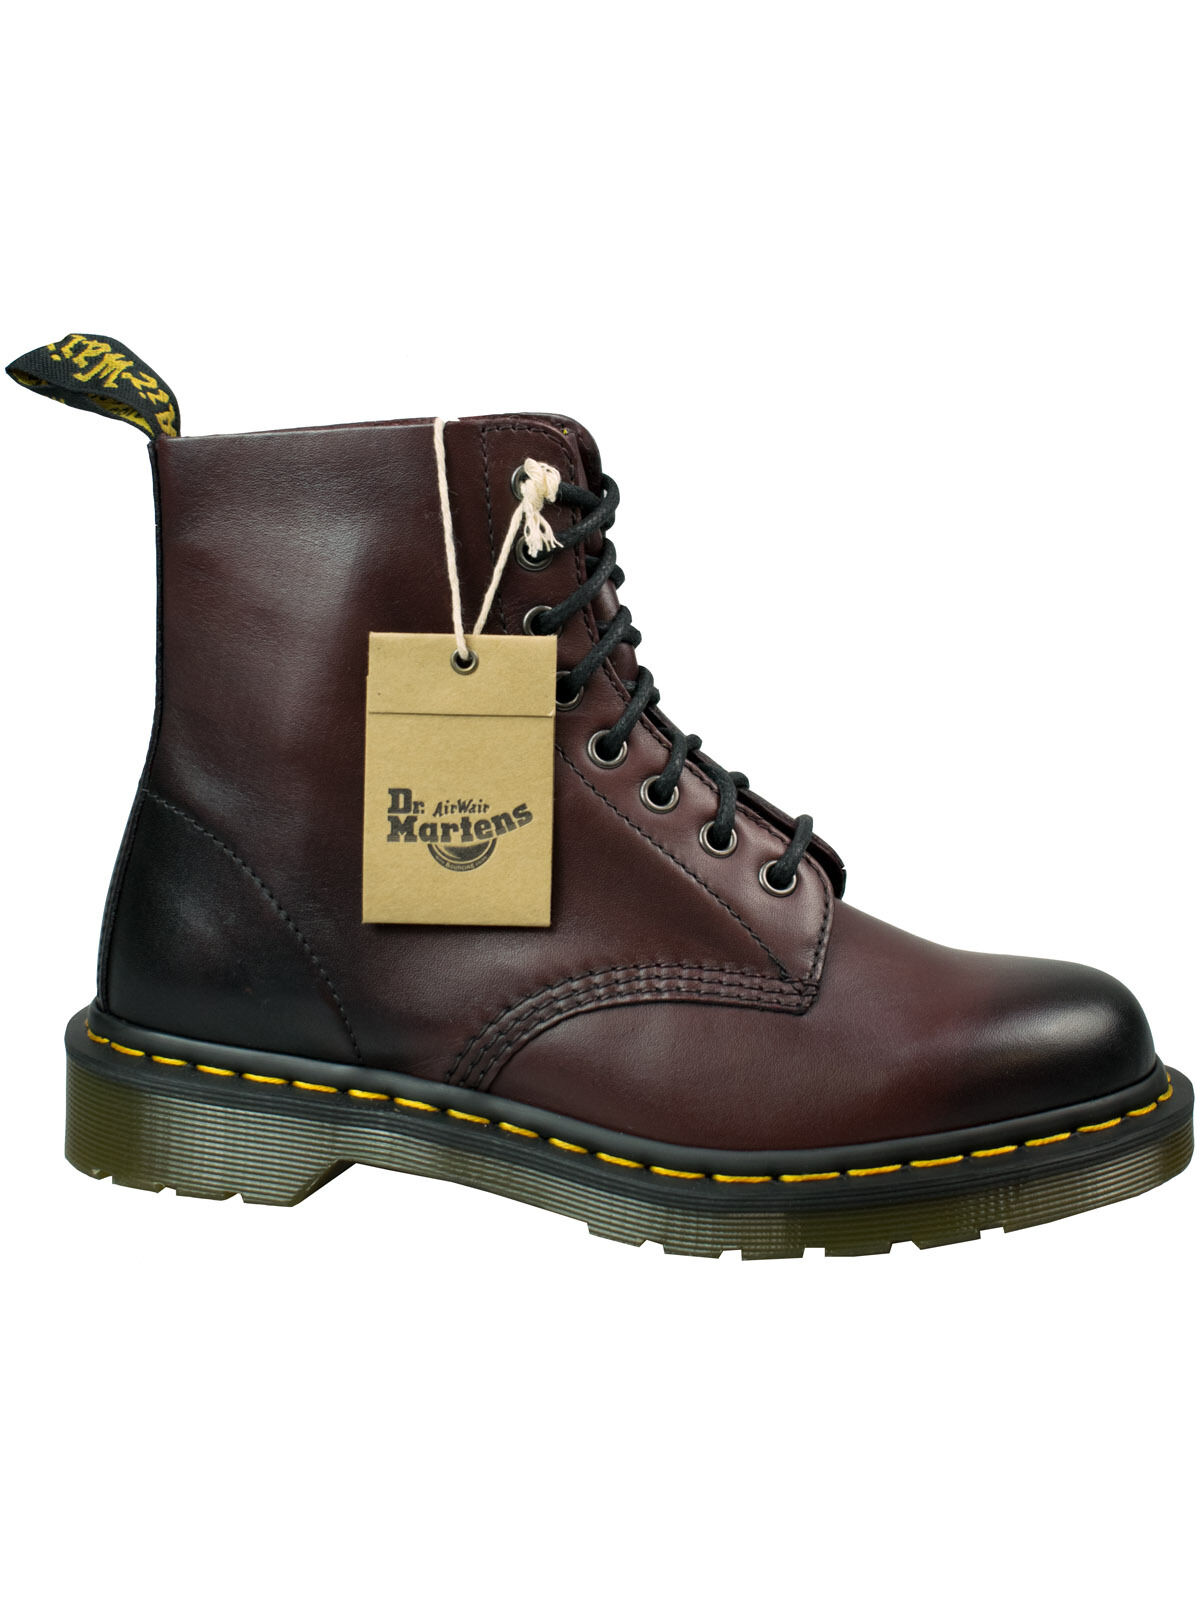 Dr. Martens doc 8 agujero botas Boot pascal Cherry Red Antique Temperly CR